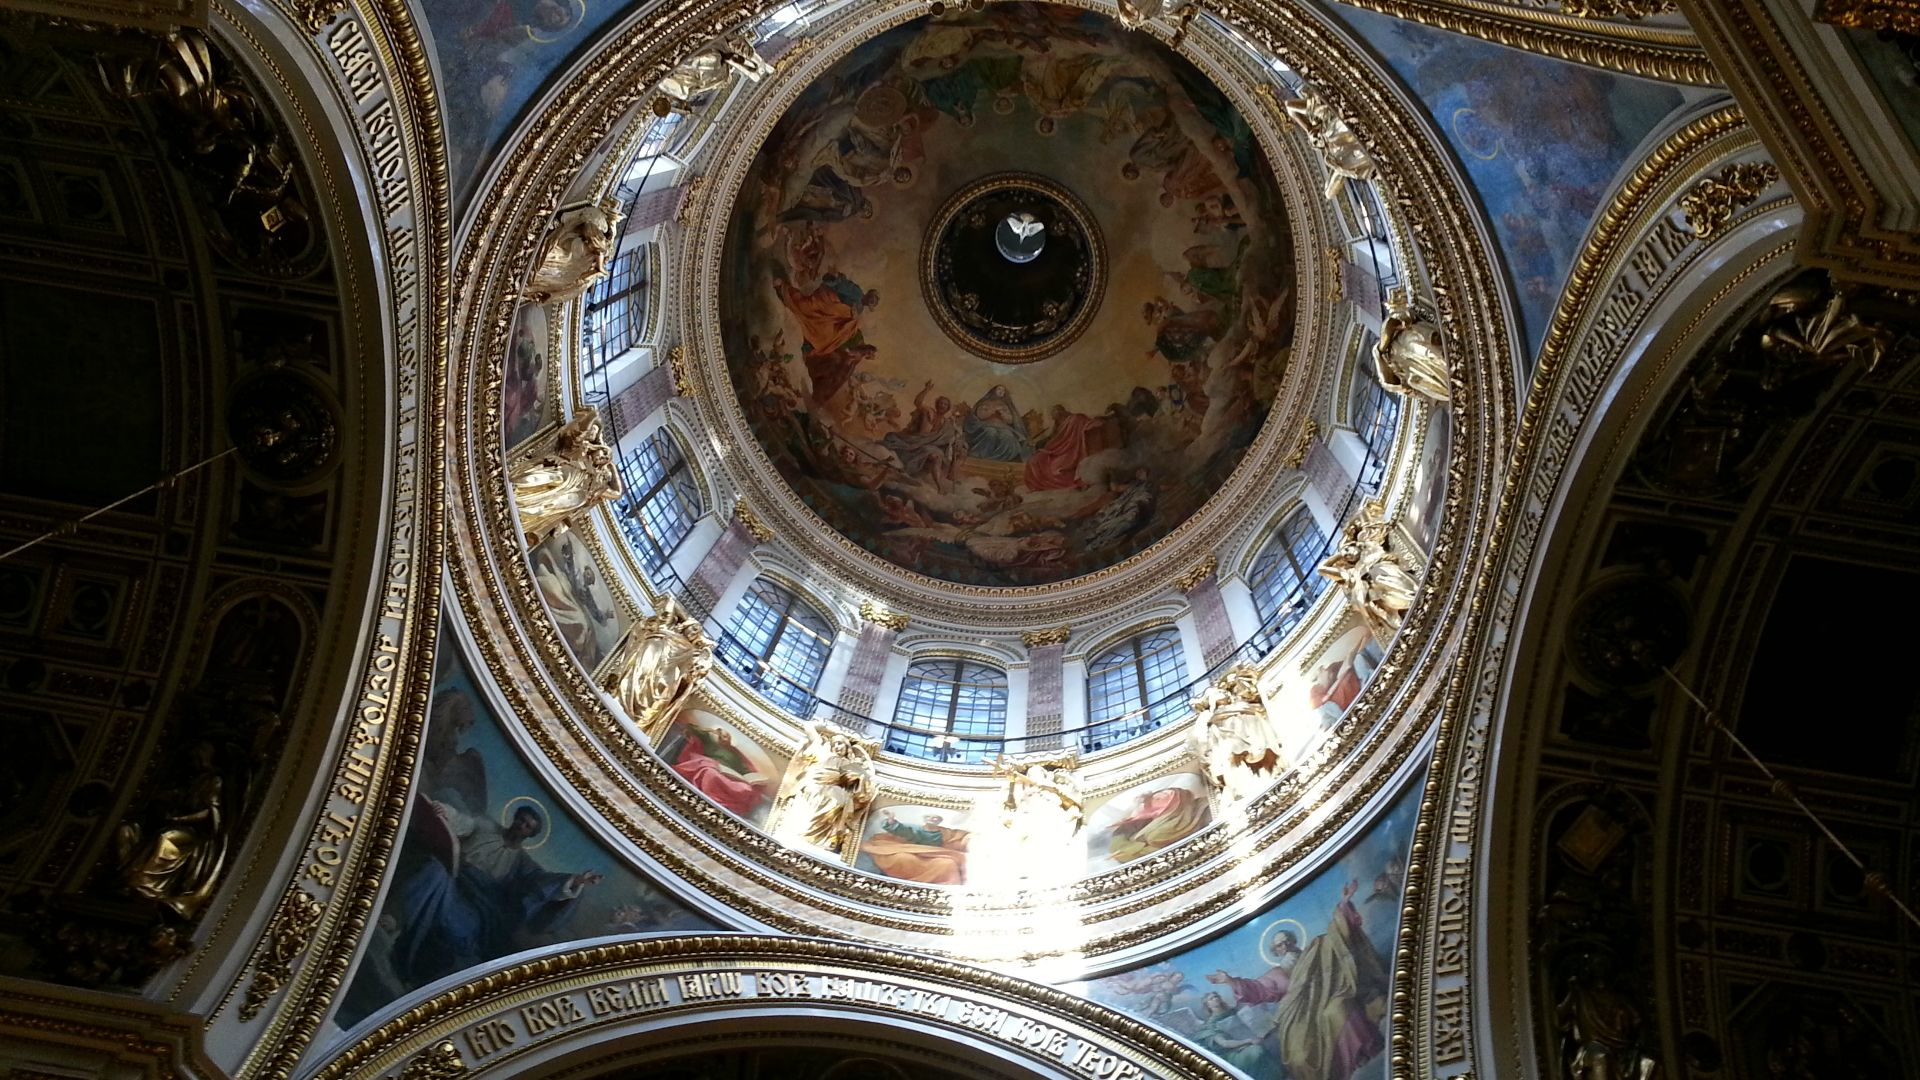 St. Isaac's Dome